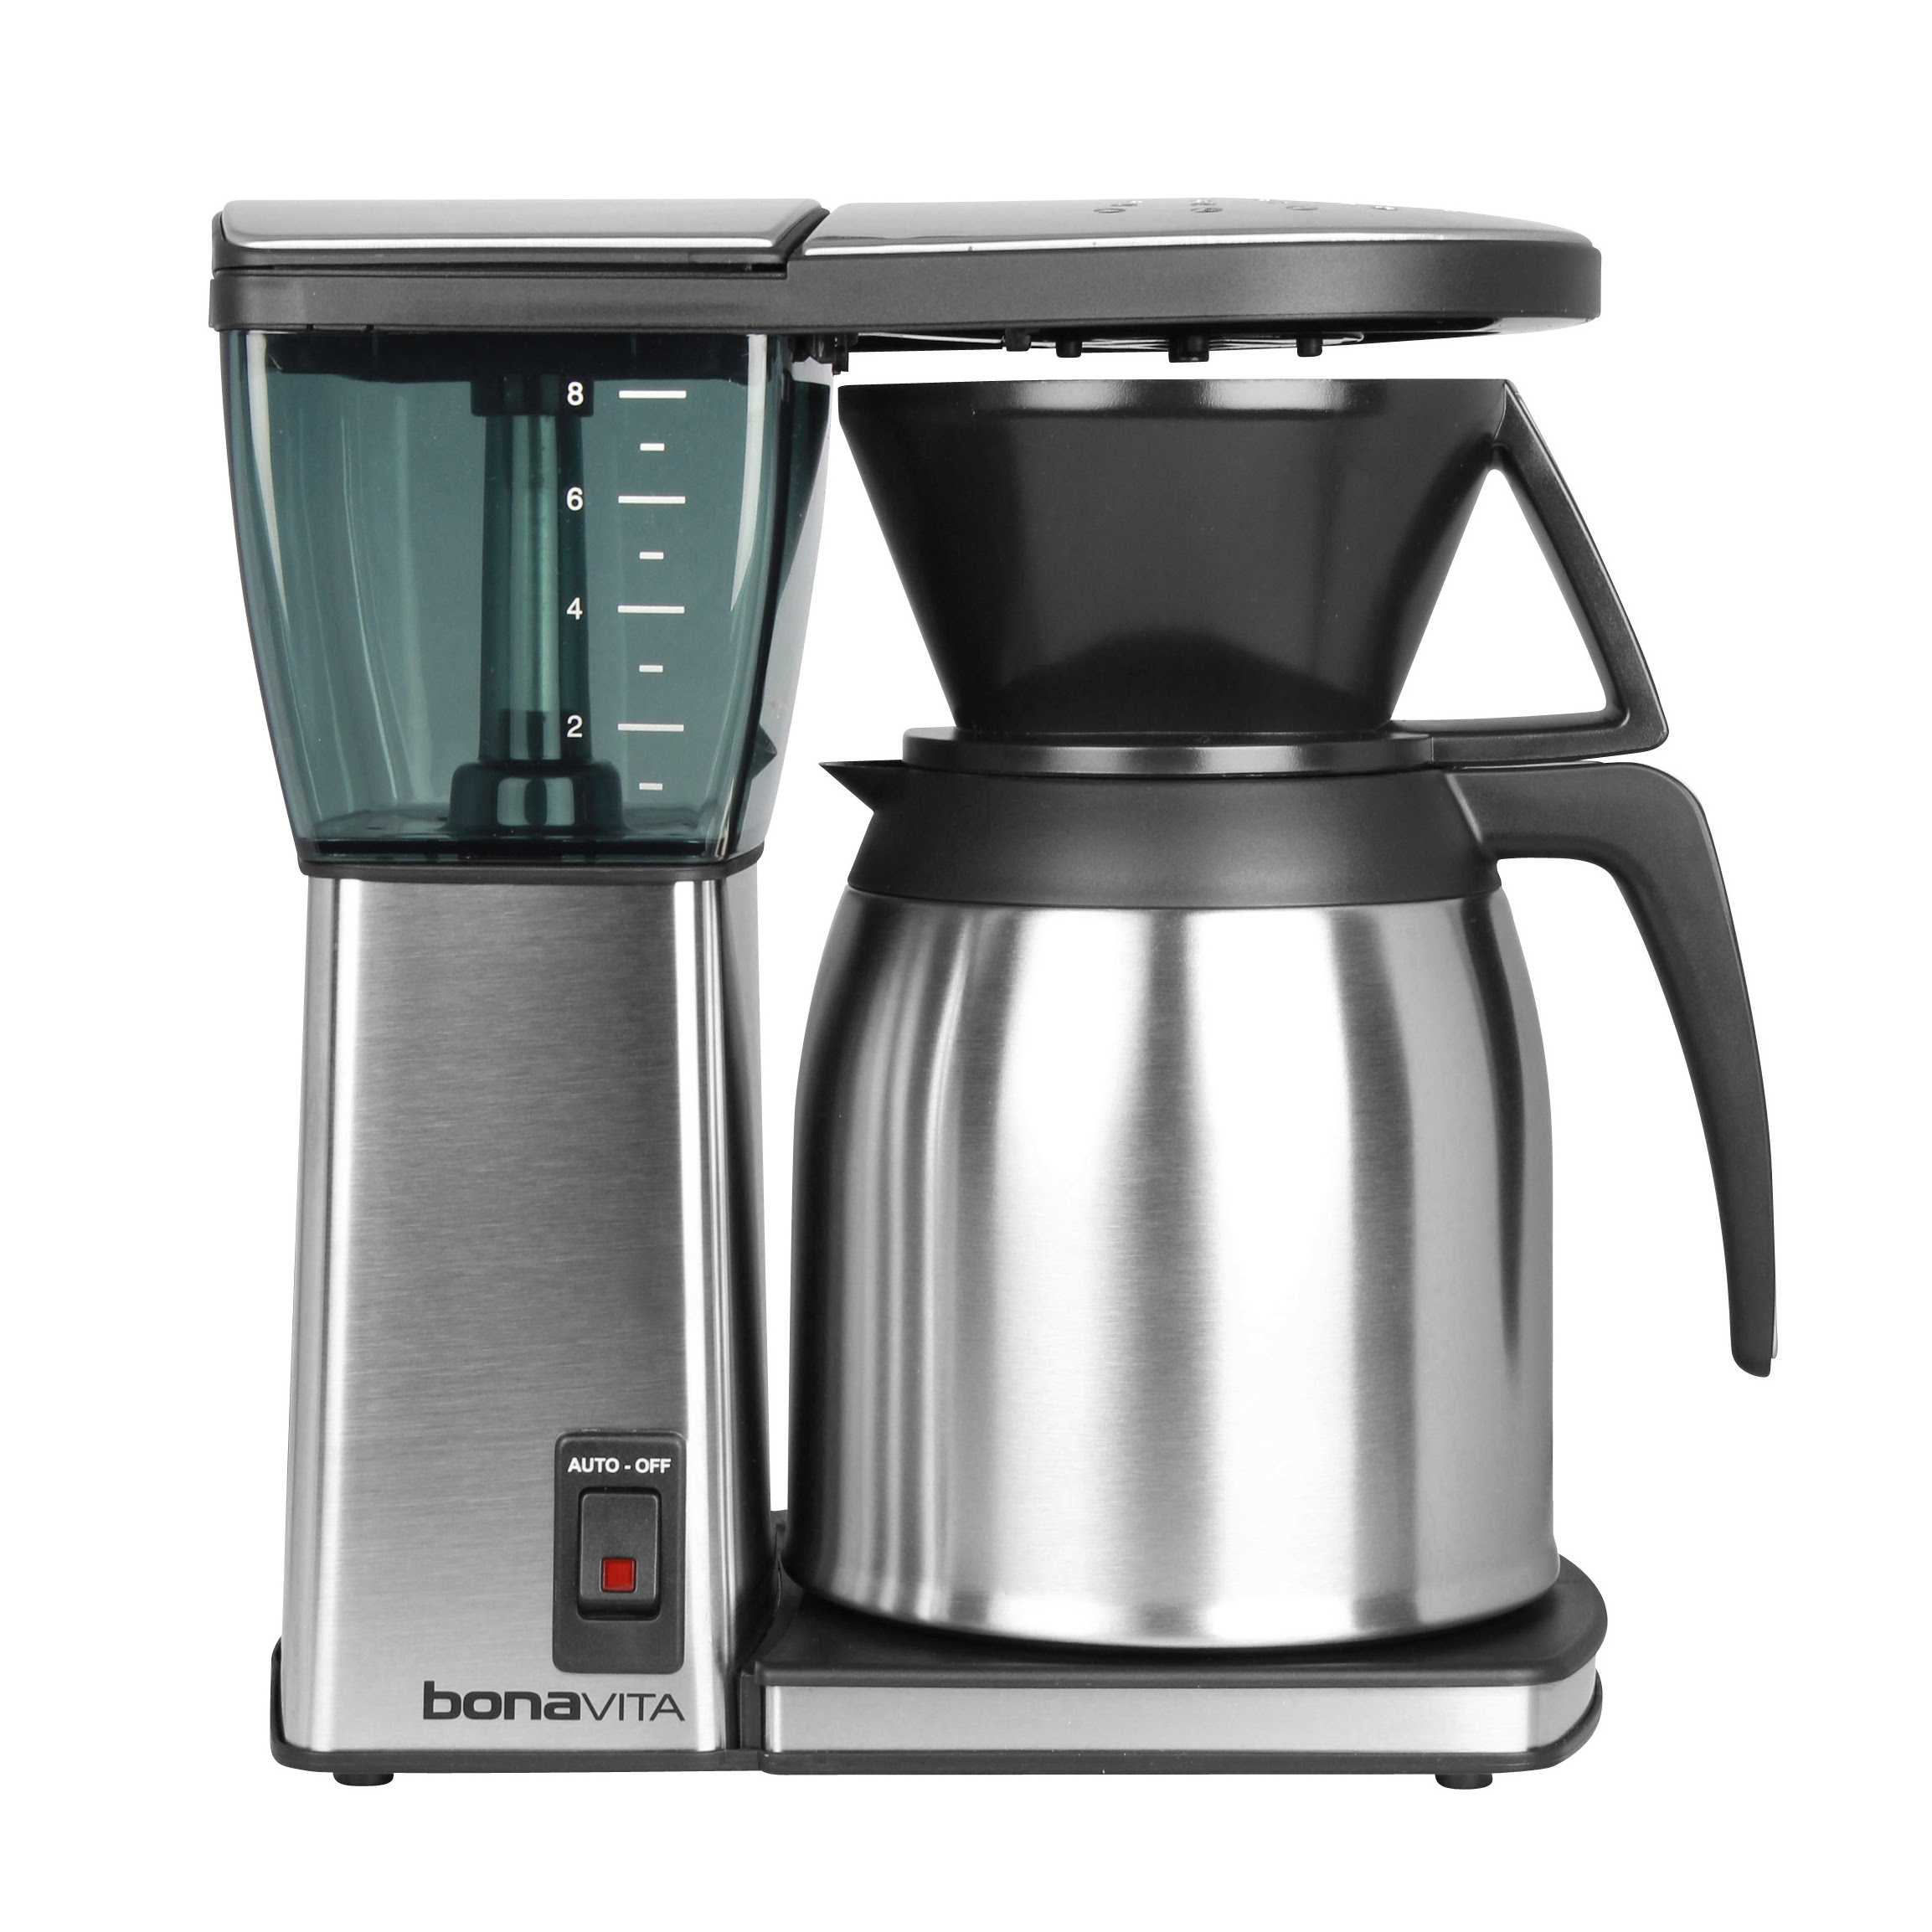 adorable nice modern metal made wonderful idea bonavita thermal coffee maker with nice large design with stainless steel design